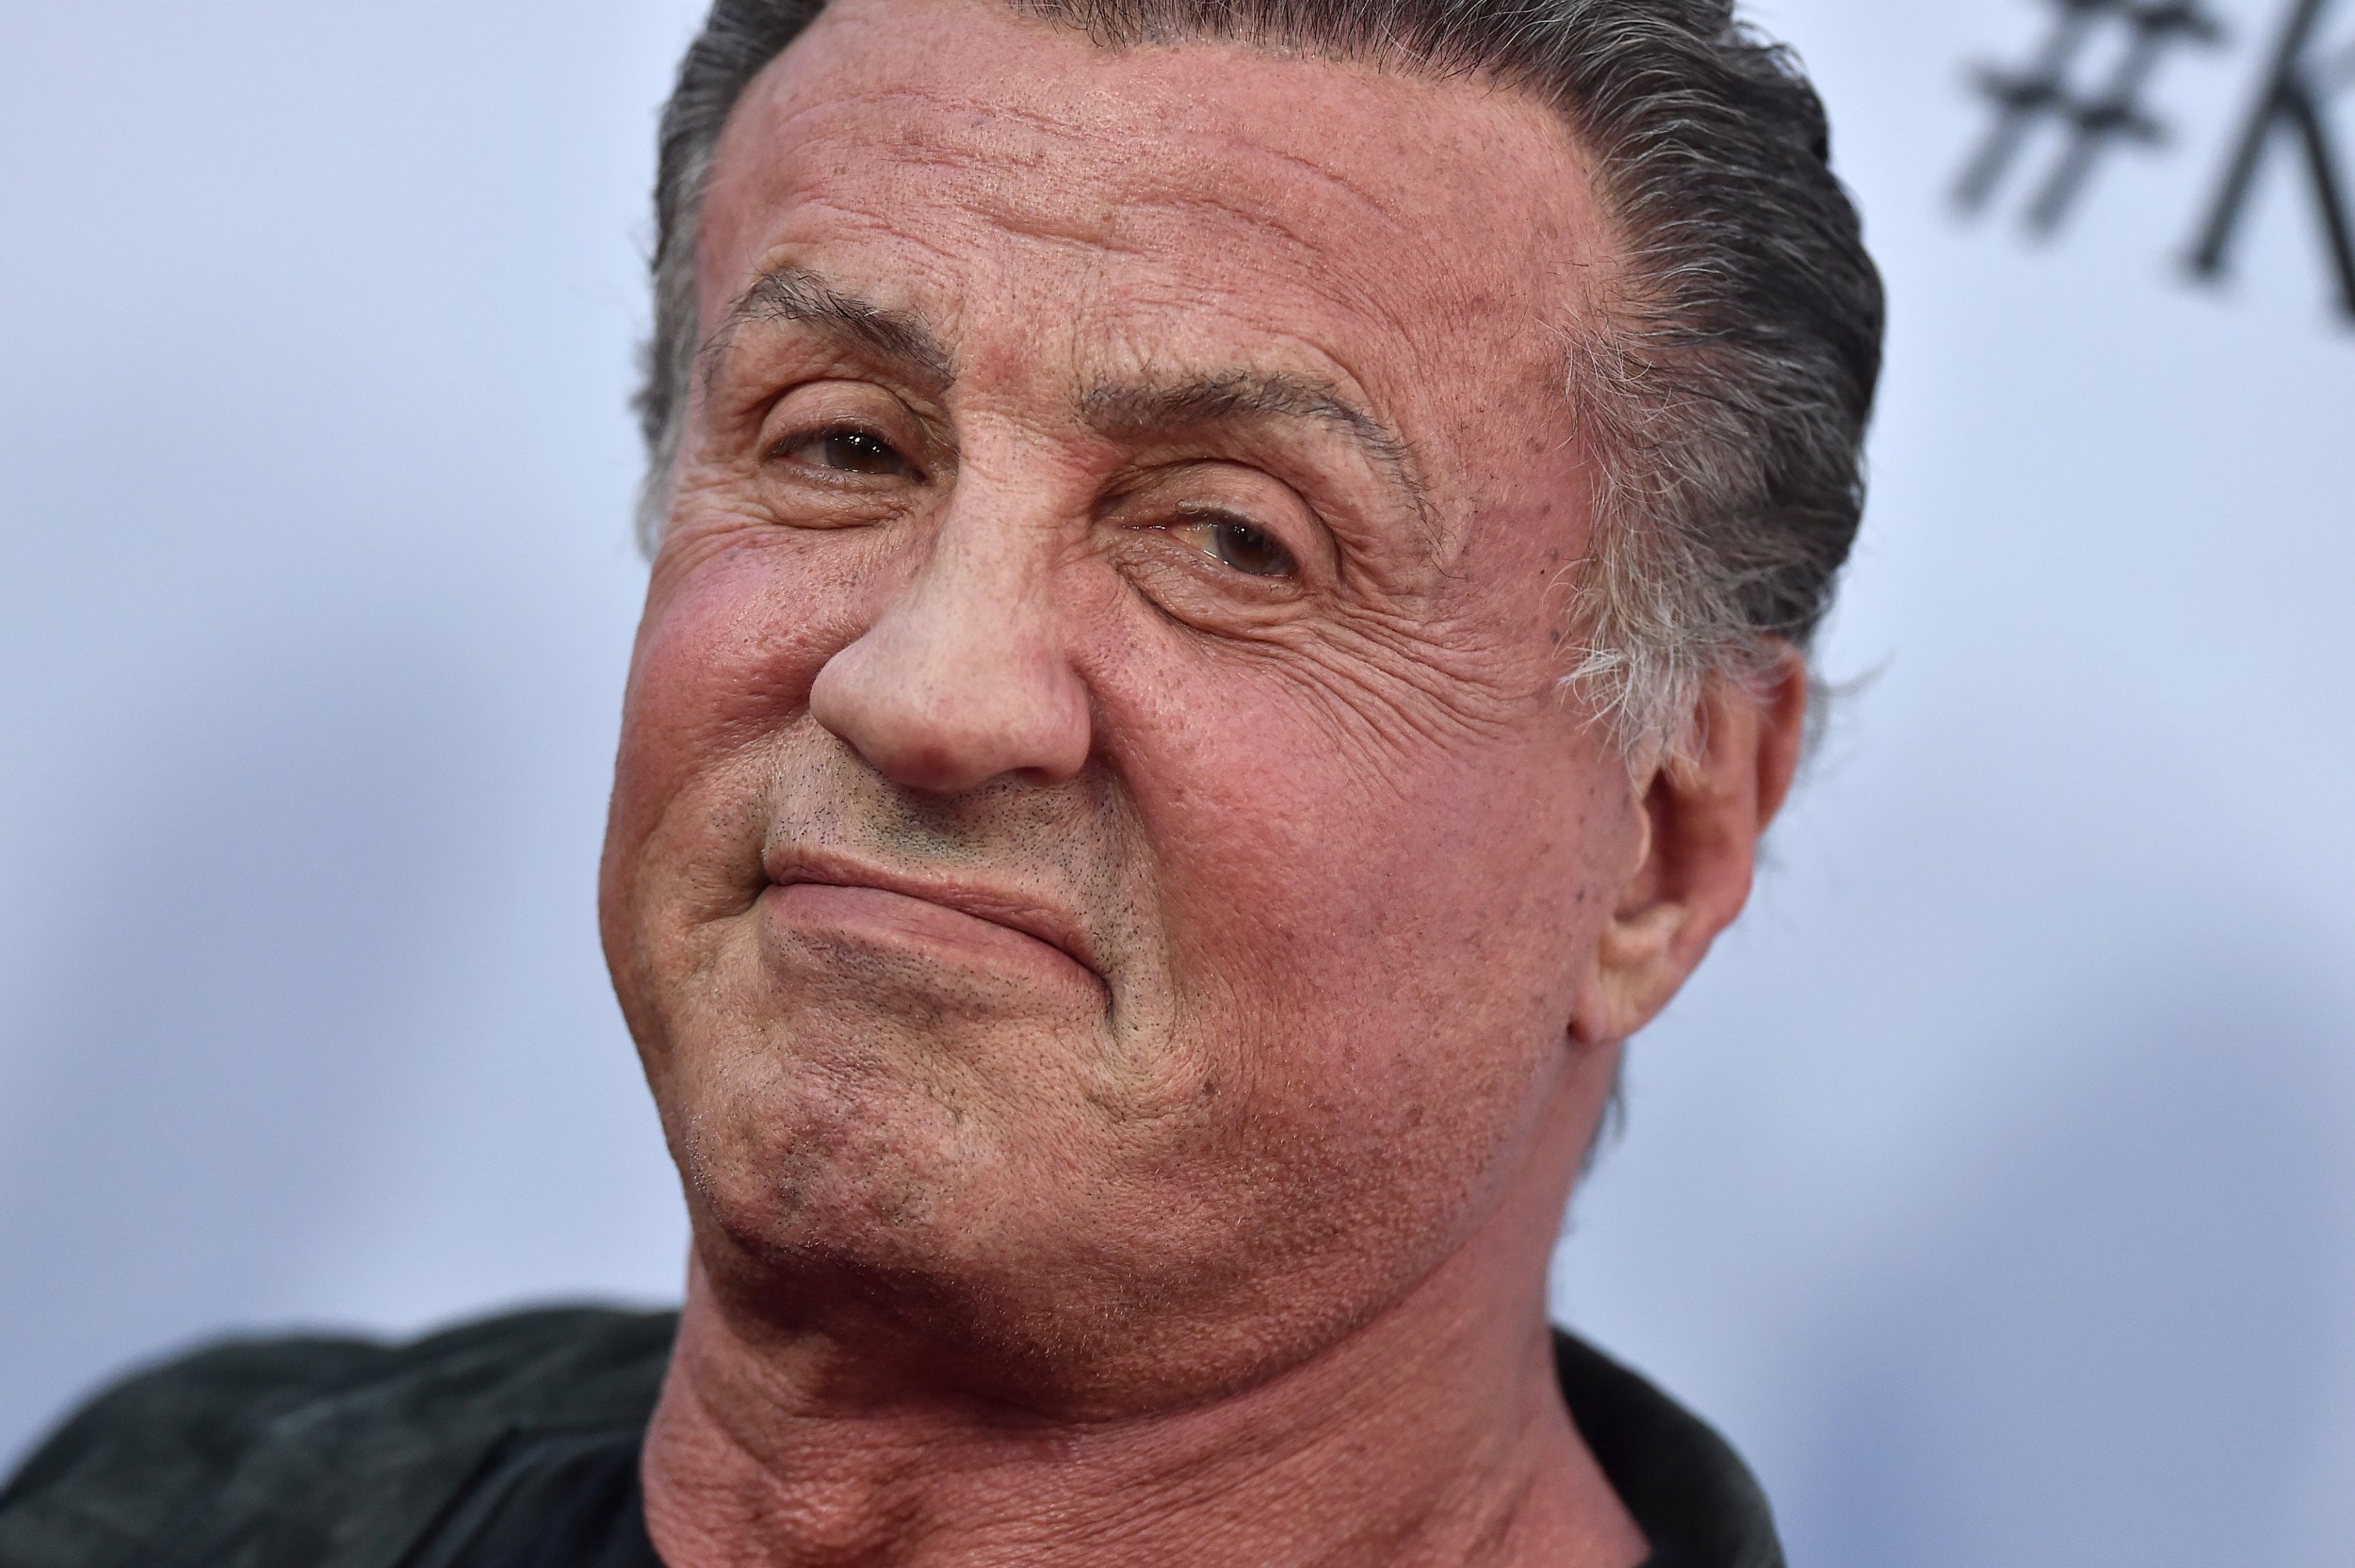 'Is Sylvester Stallone dead?' – fans panic as death hoax resurfaces